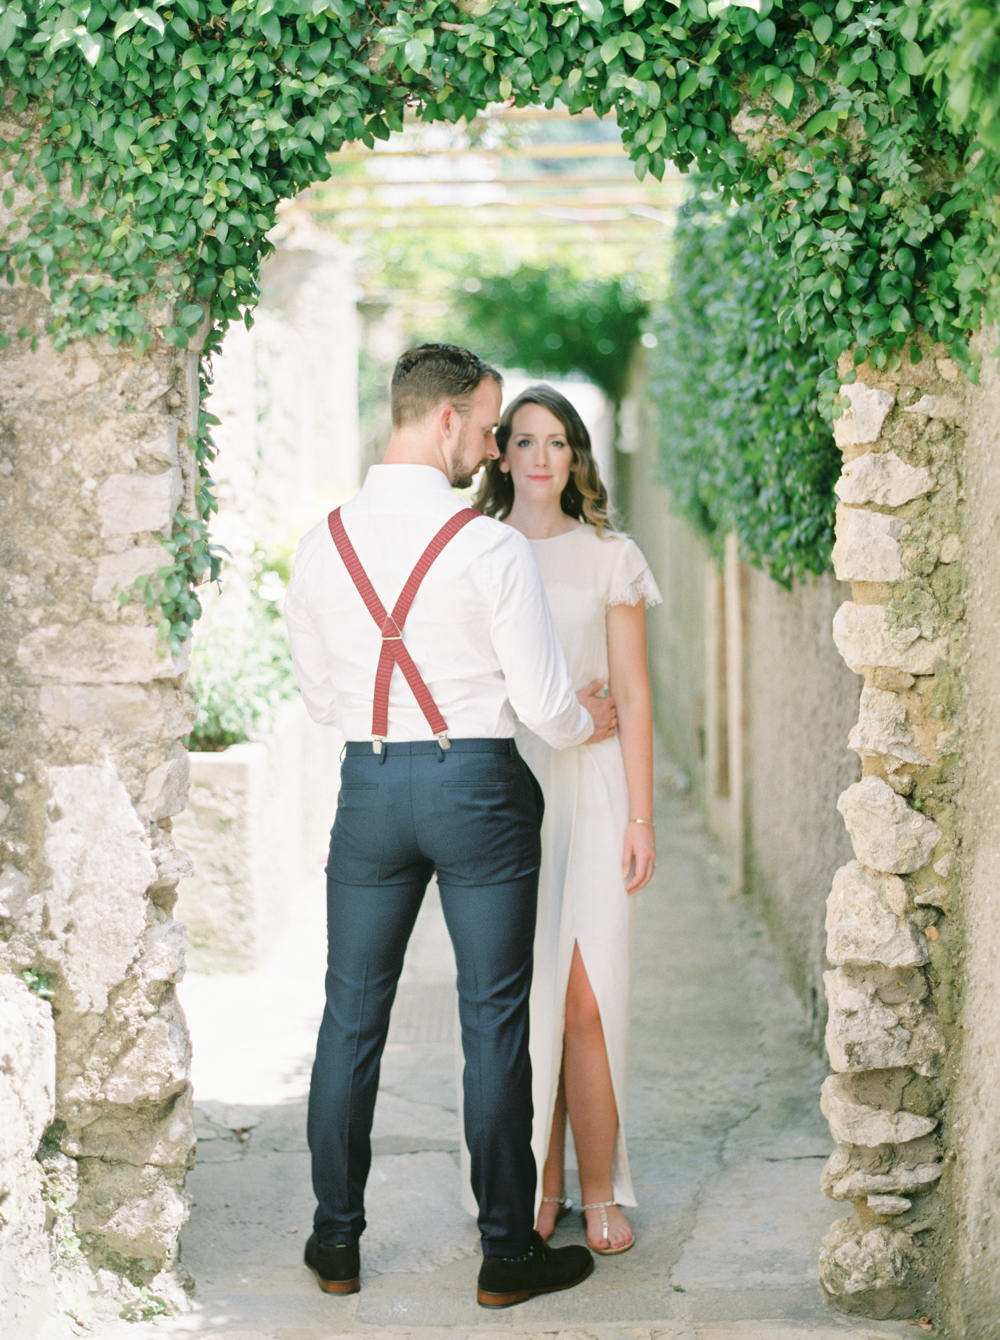 Capri is one of the best places to get married due to the mild climate and historical spaces